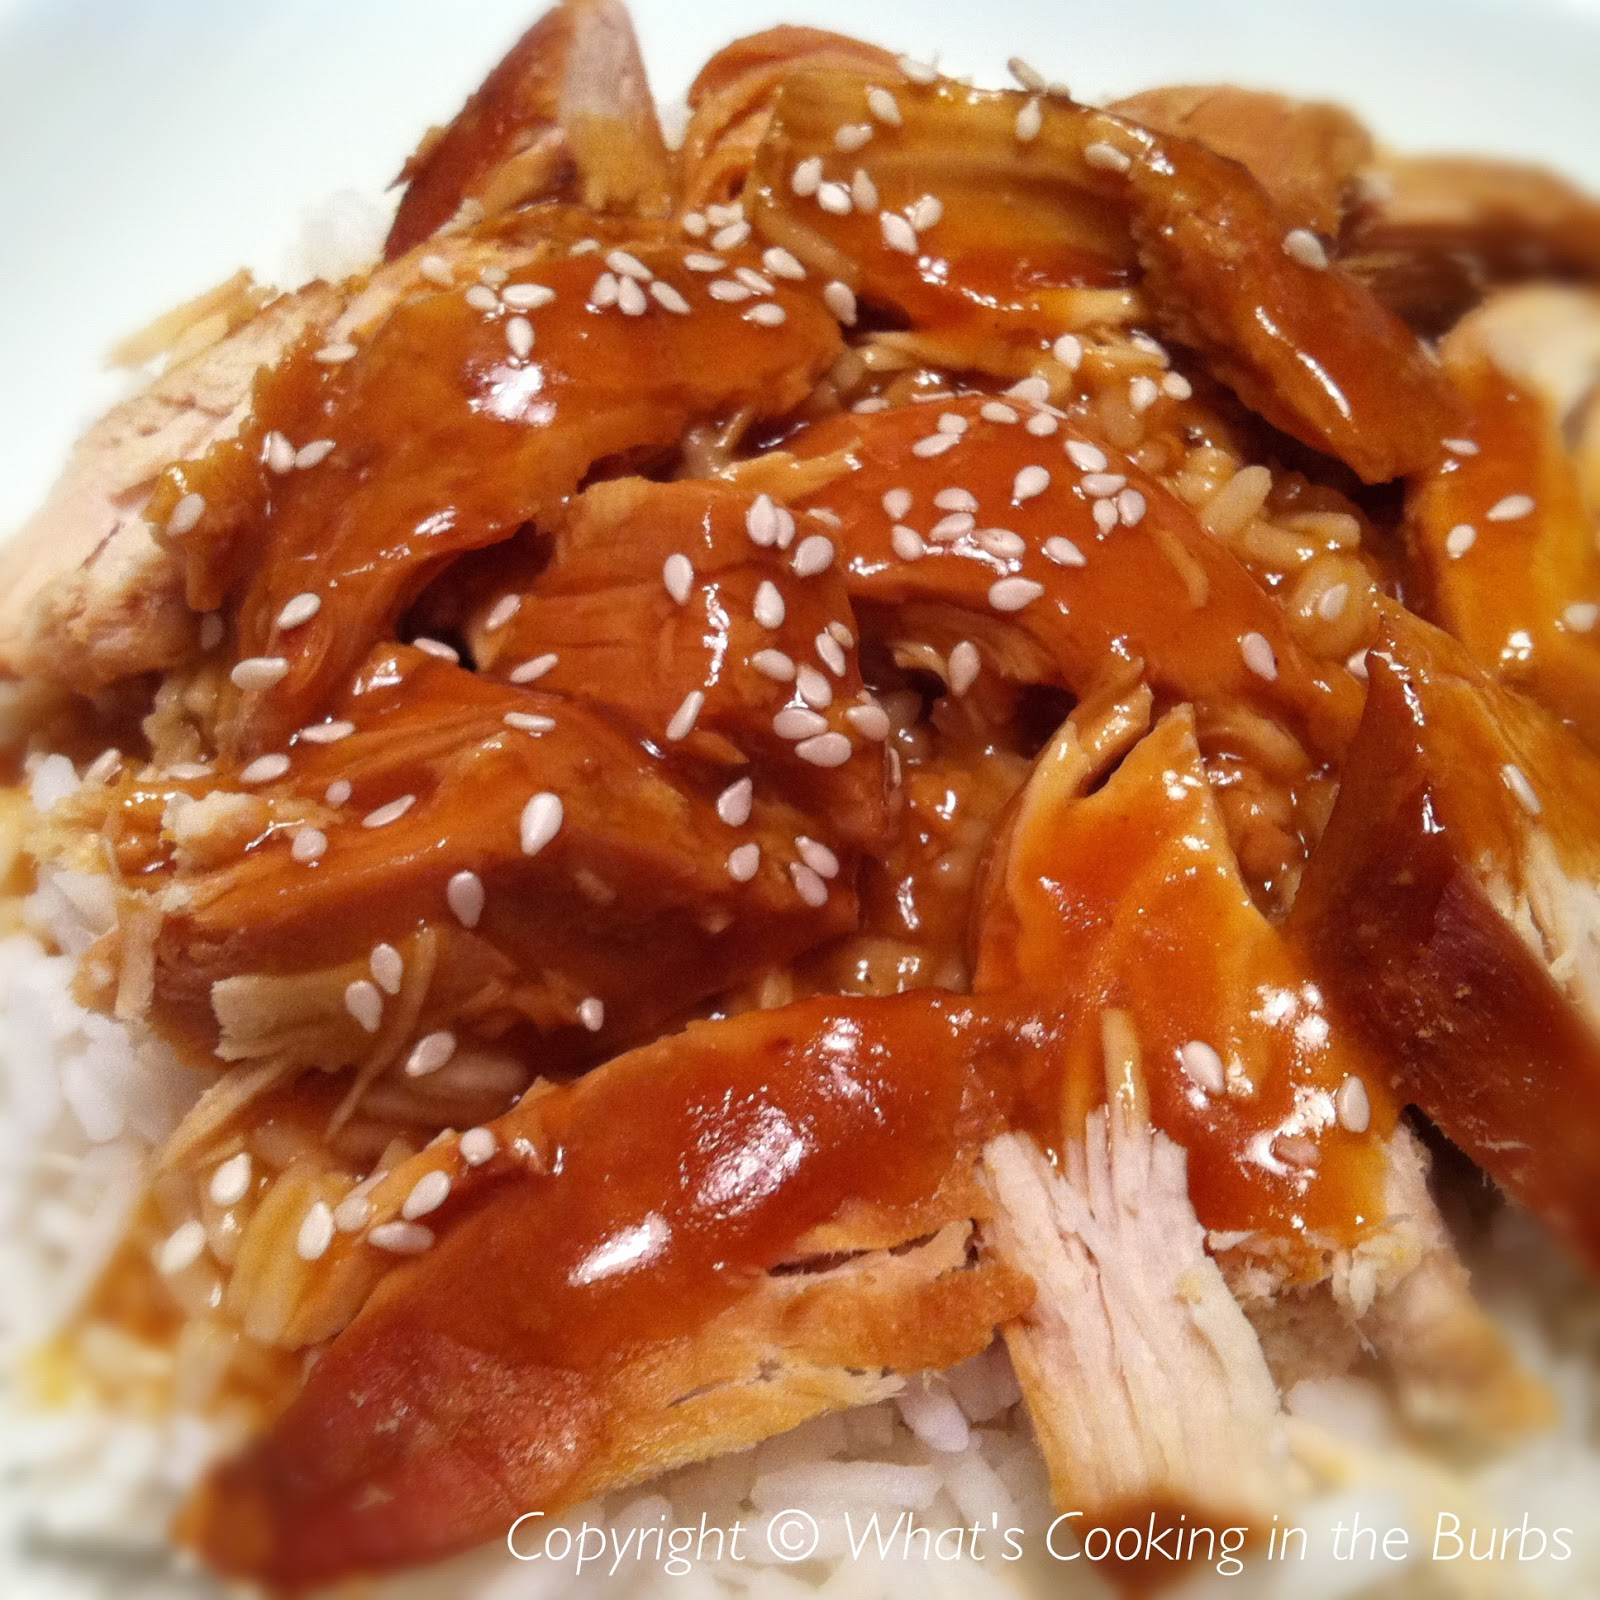 What's Cooking in the Burbs: Slow Cooker Sesame Orange Chicken